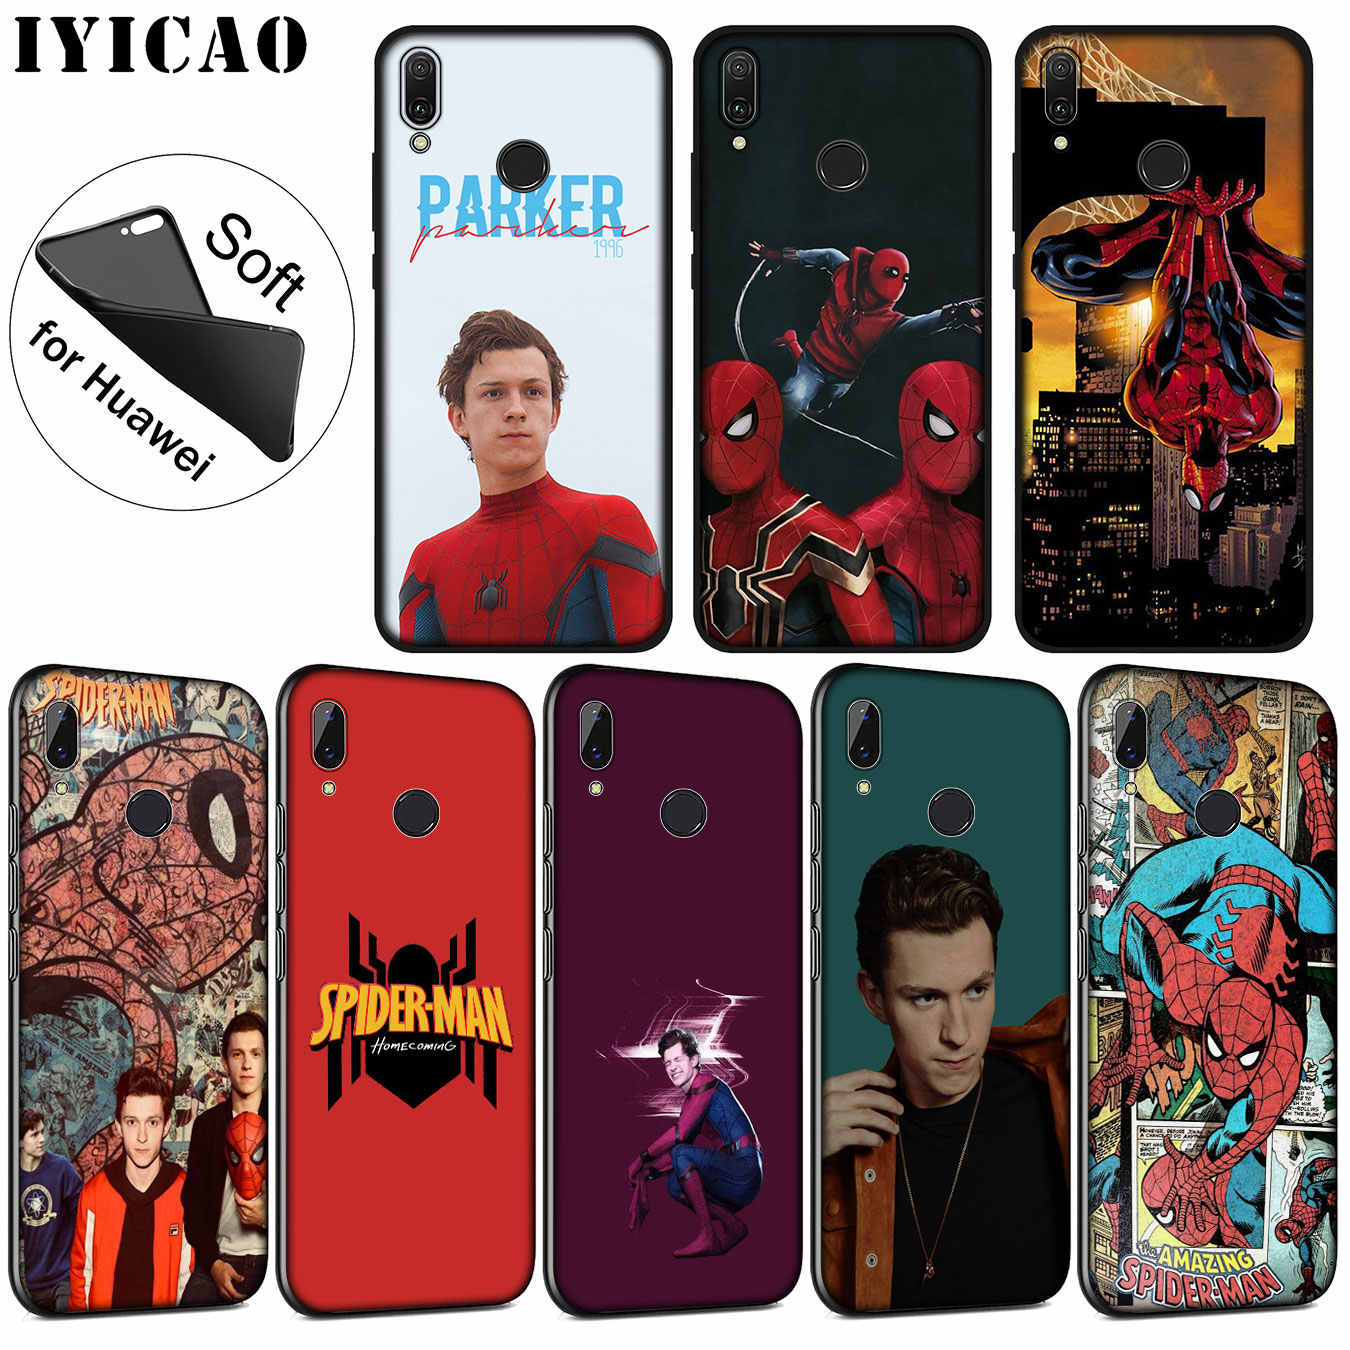 IYICAO Marvel Tom Holland SpiderMan Soft Silicone Case voor Huawei P30 P20 Pro P10 P9 P8 Lite Mini 2017 2016 2015 P smart Z 2019